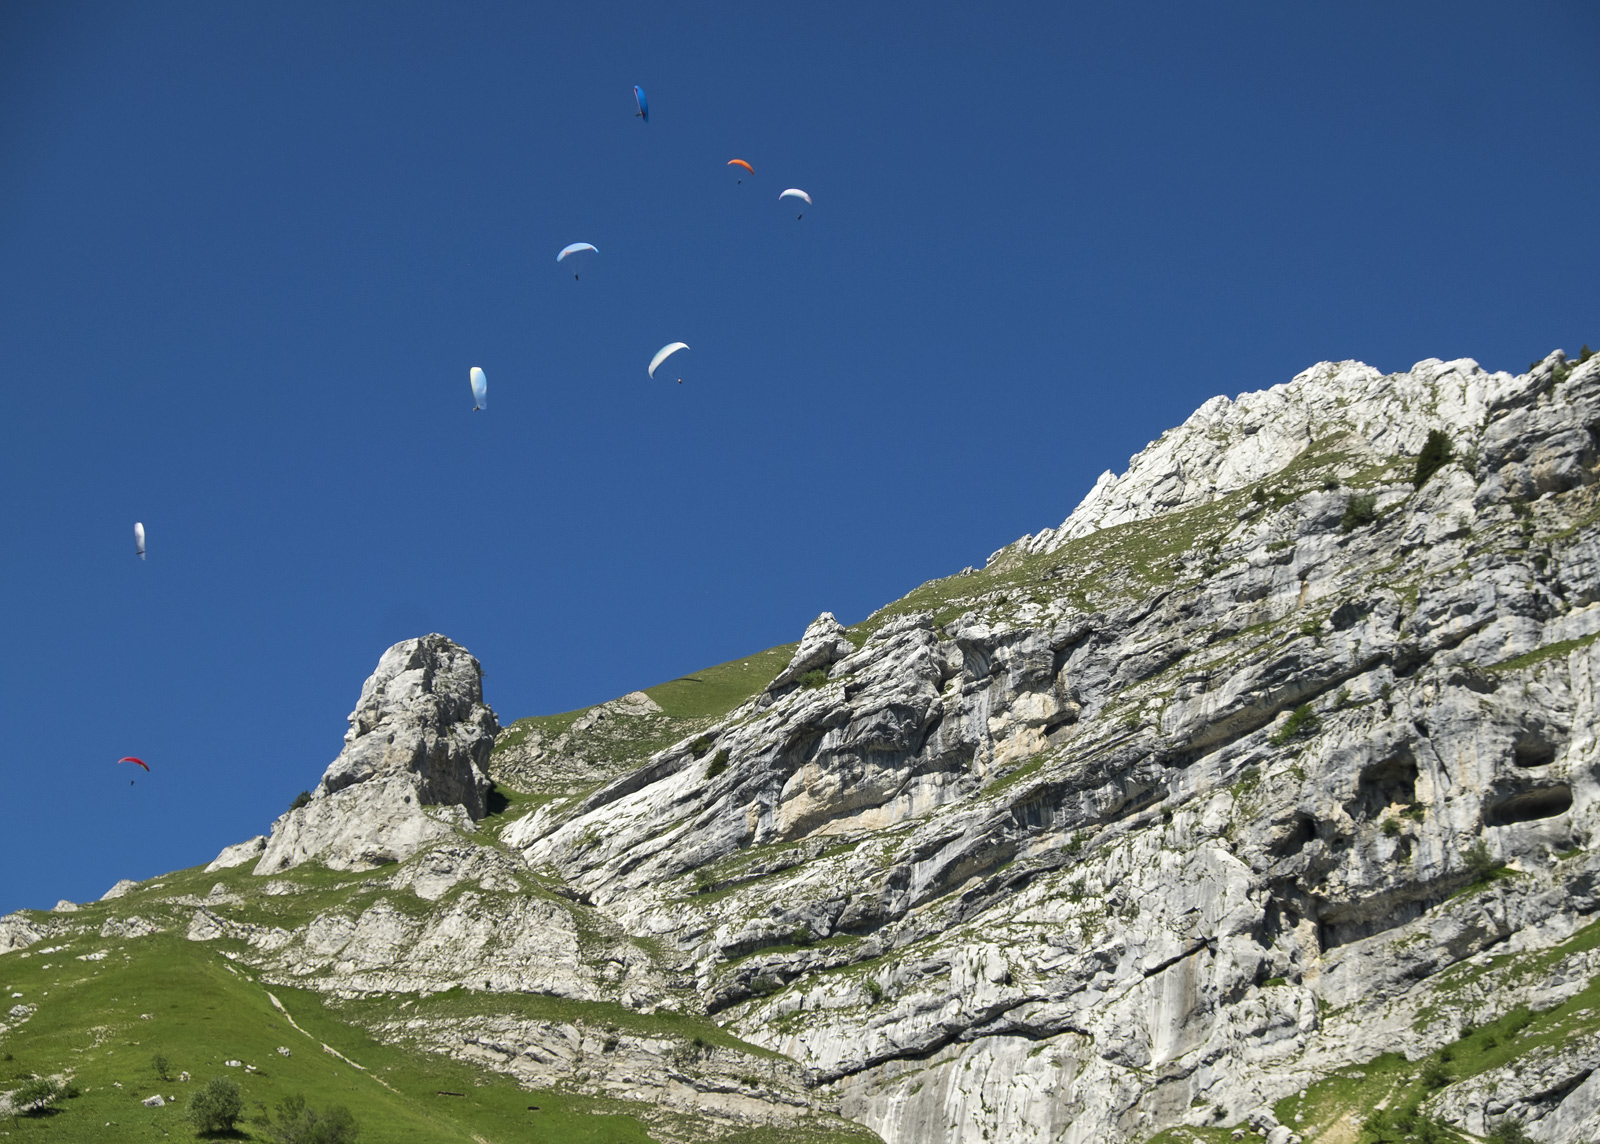 Suspended Alps, Annecy, Haute-Savoie, France, high, Alps, alpine, meadow, blue, sky, climb, lush, flock, paragliders, thermals, photo